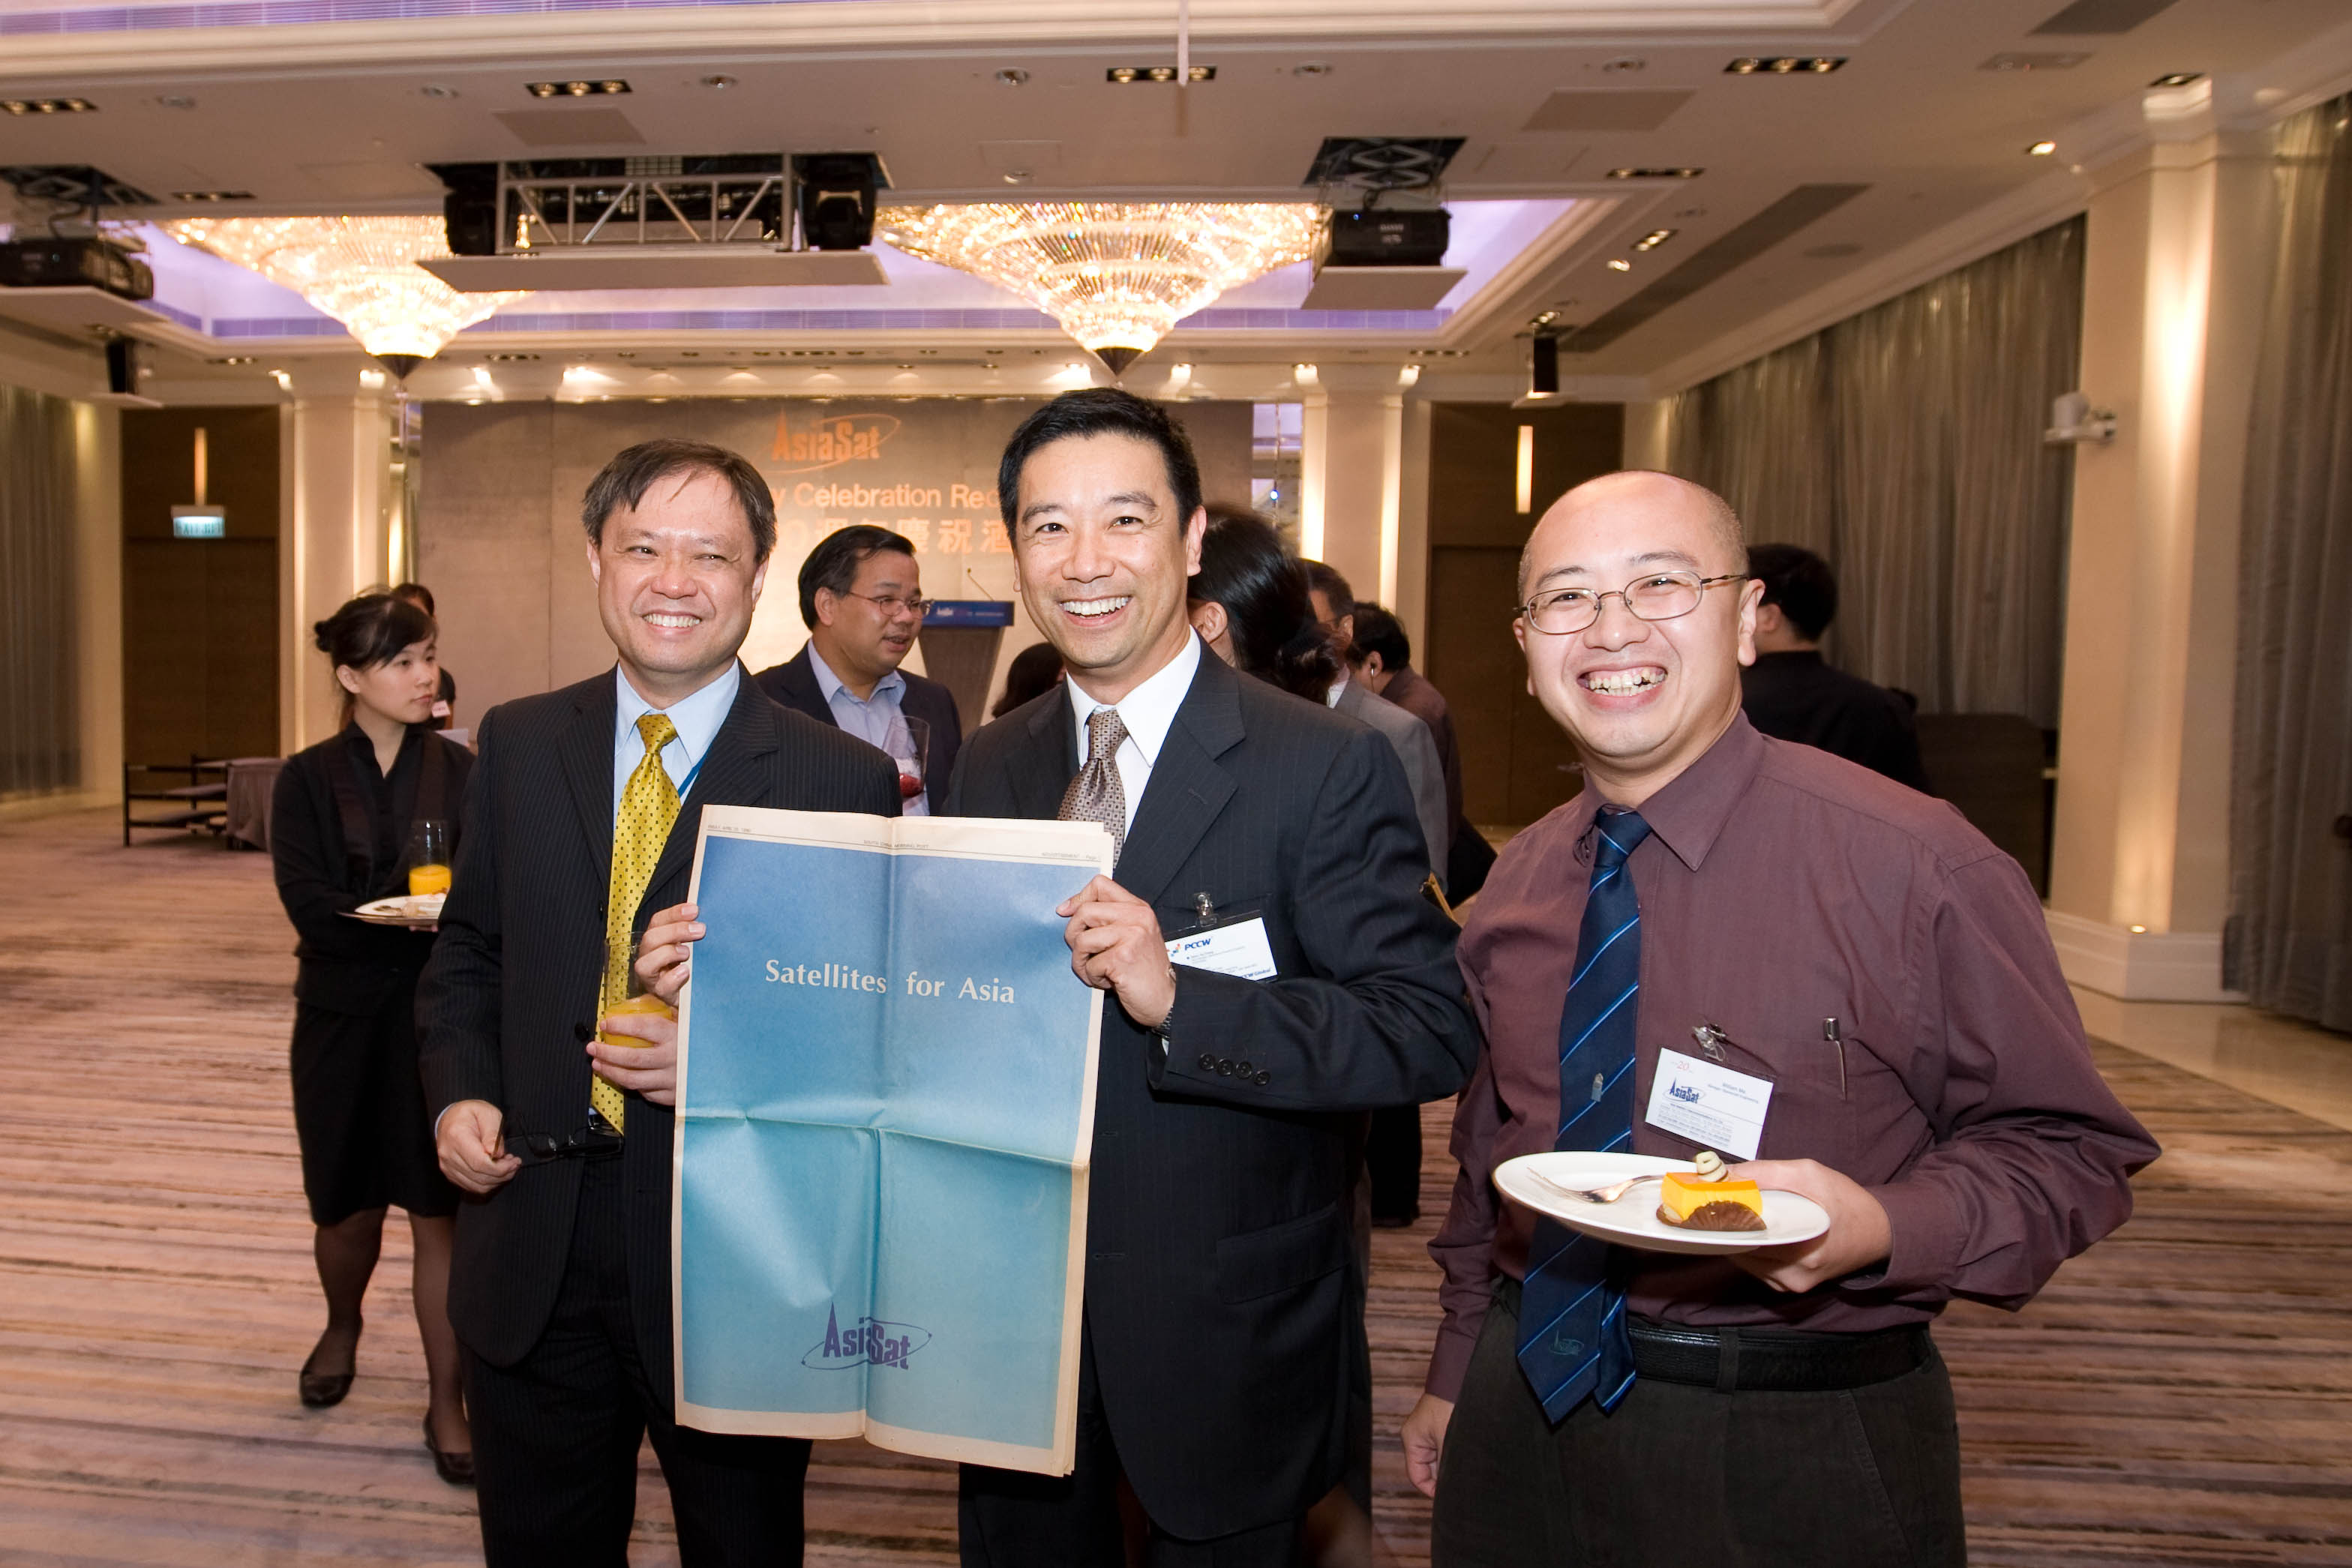 William (right) with Fred Ho (left), AsiaSat's VP Technical Operations and Henry Au Yeung (middle), ex-AsiaSat staff showing a newspaper advertisement commemorating AsiaSat 1 launch during AsiaSat's 20th anniversary celebration cocktail